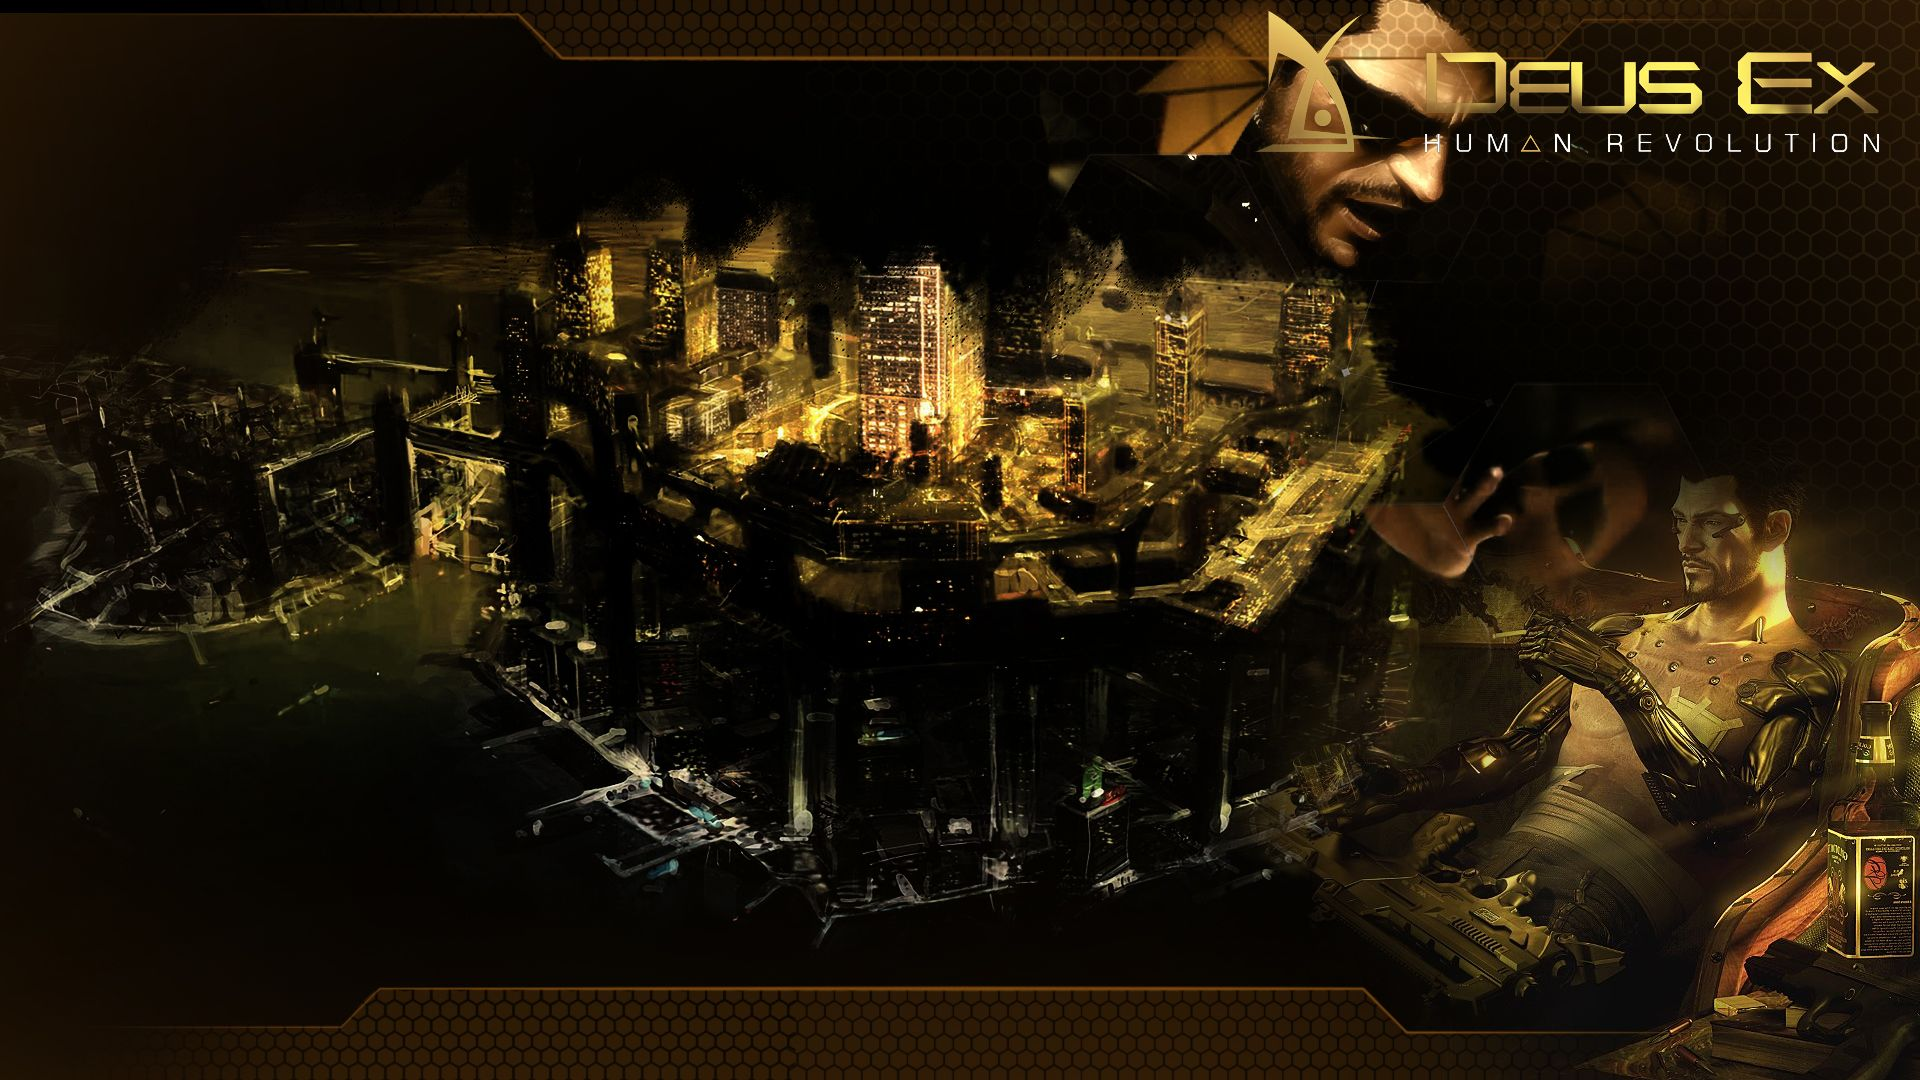 Deus Ex Human Revolution Wallpaper 1